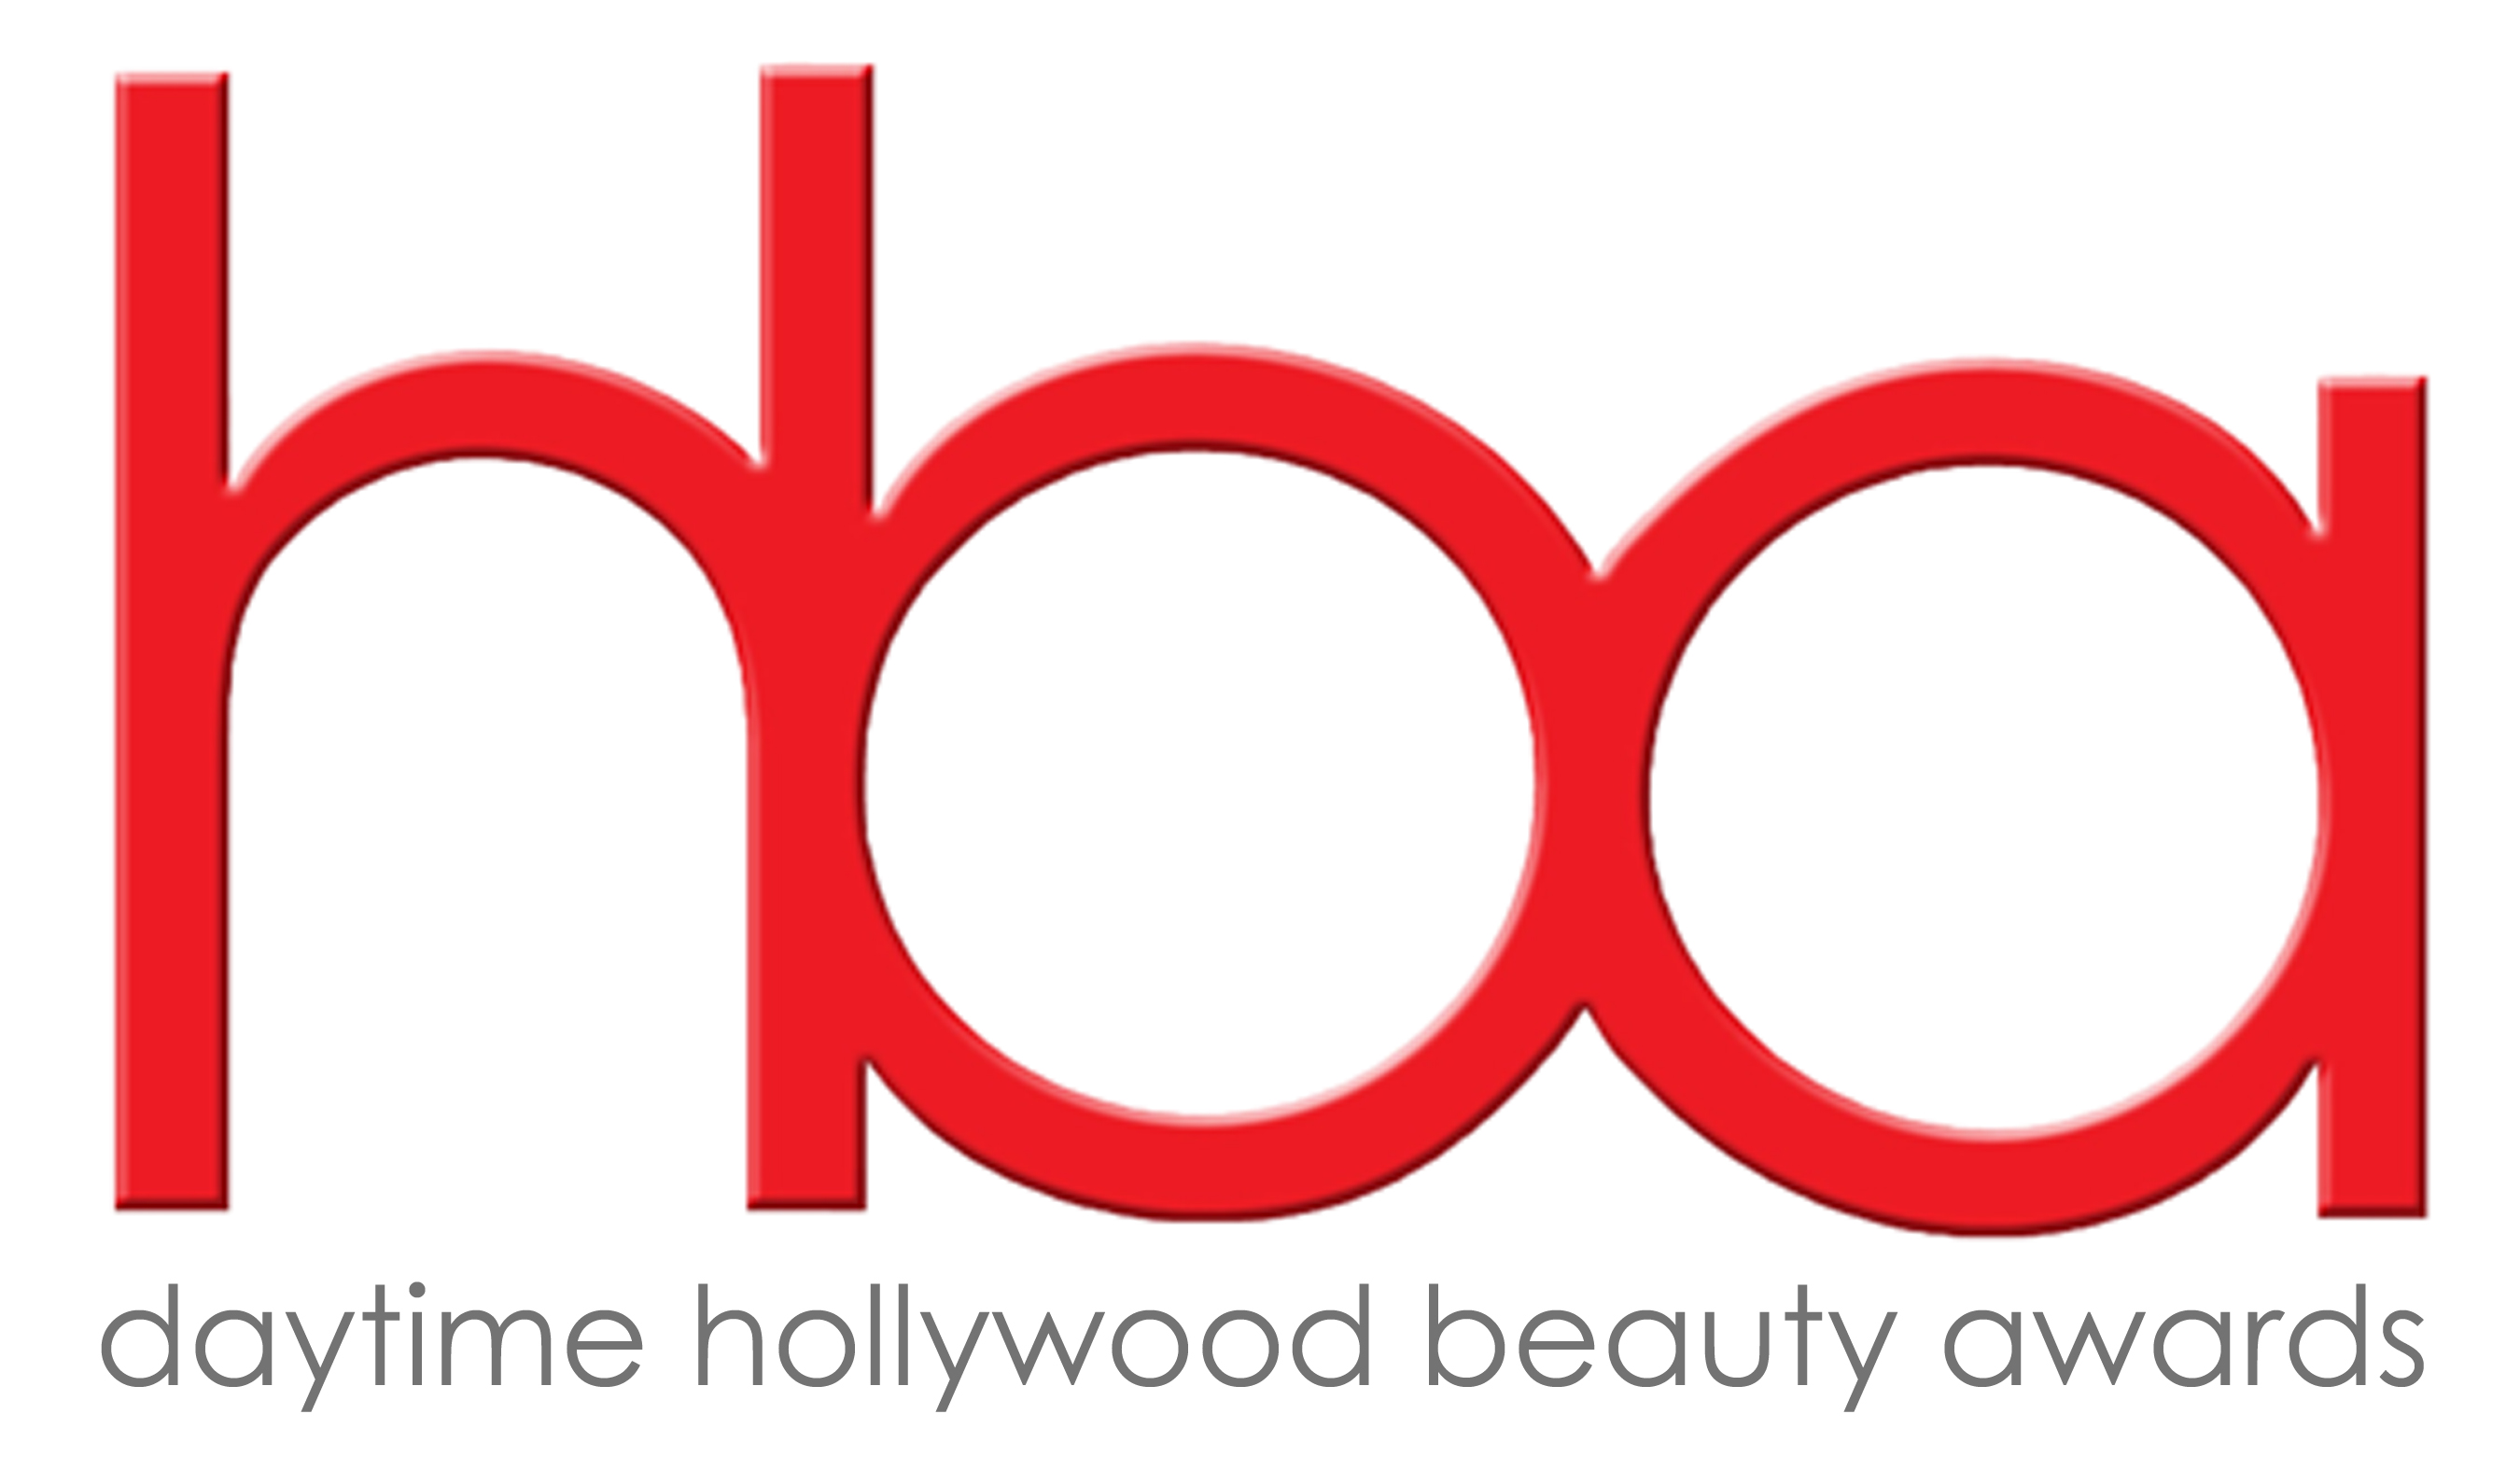 2018 Daytime Hollywood Beauty Awards Announce Nominees